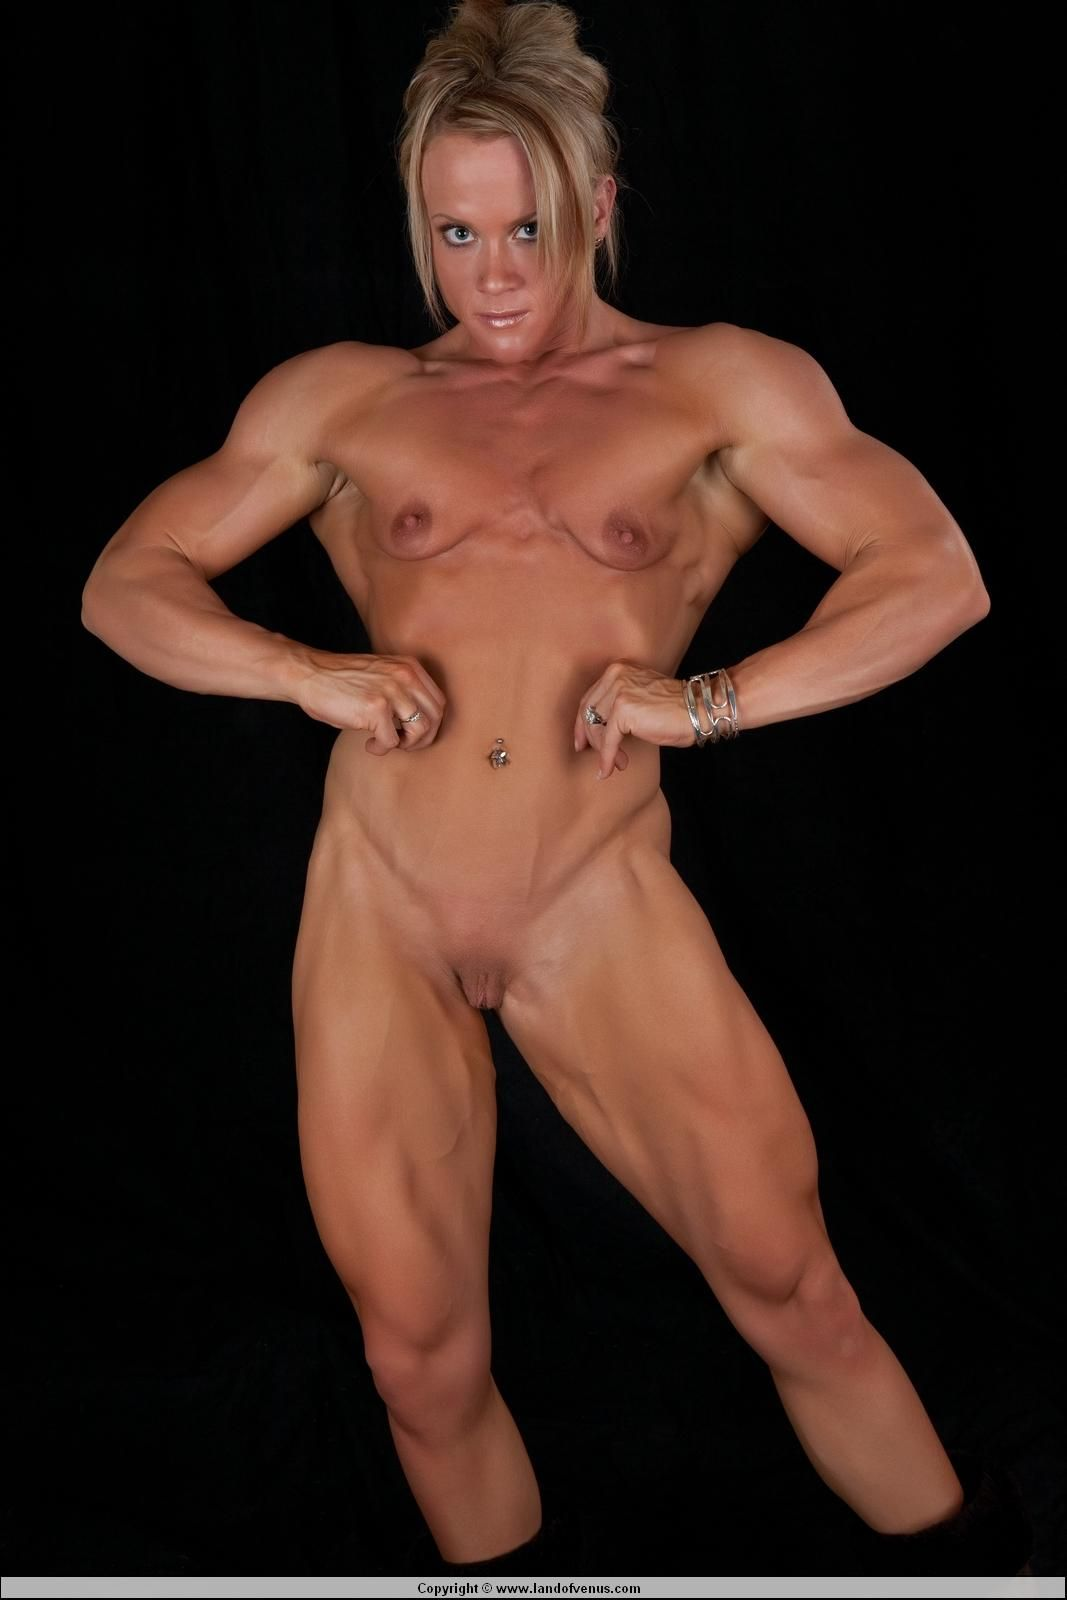 Nude Female Bodybuilders Photos